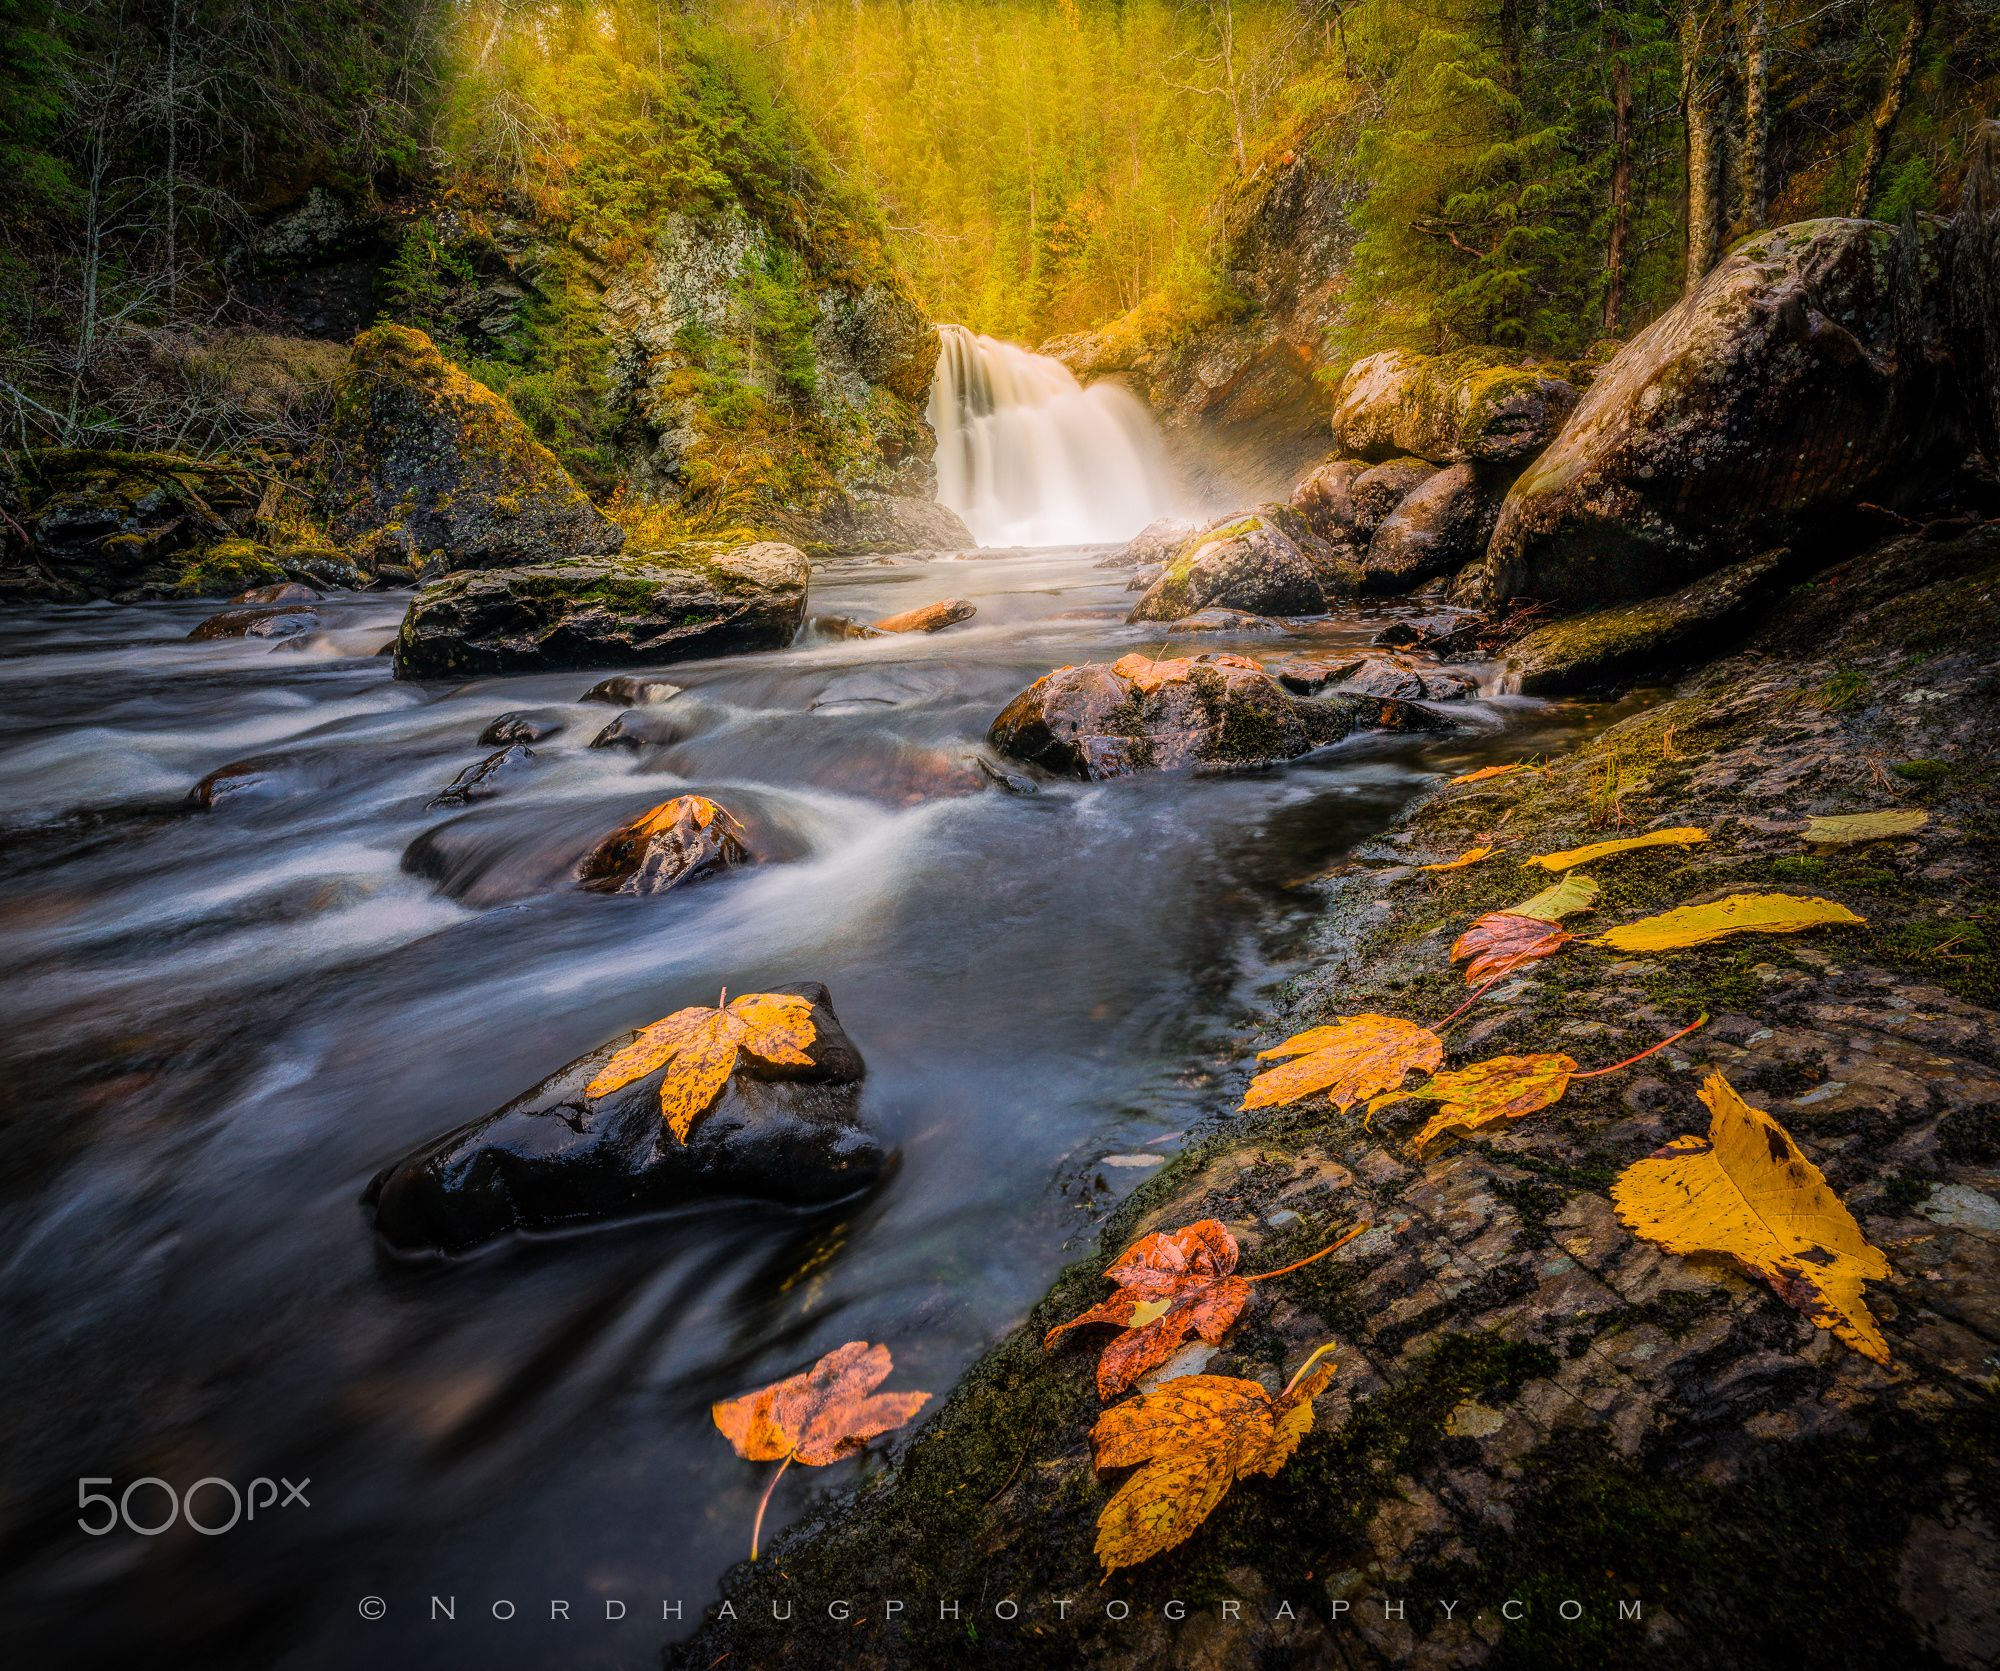 Dolafossen waterfall by Dag Ole Nordhaug - Photo 127574959 - 500px (Norway)